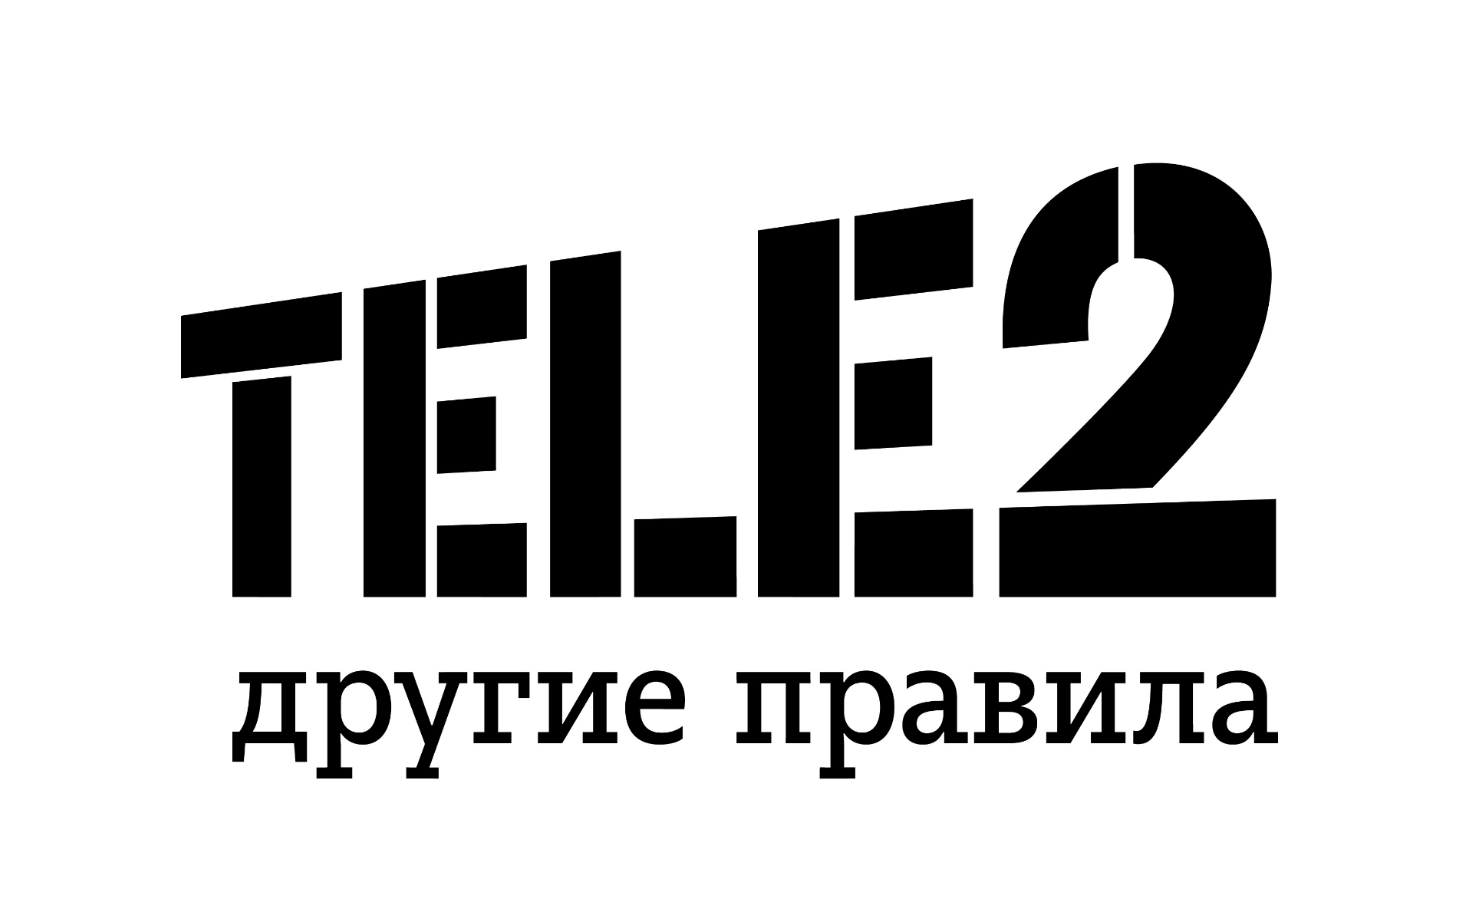 How to find out the tariff Tele2 2